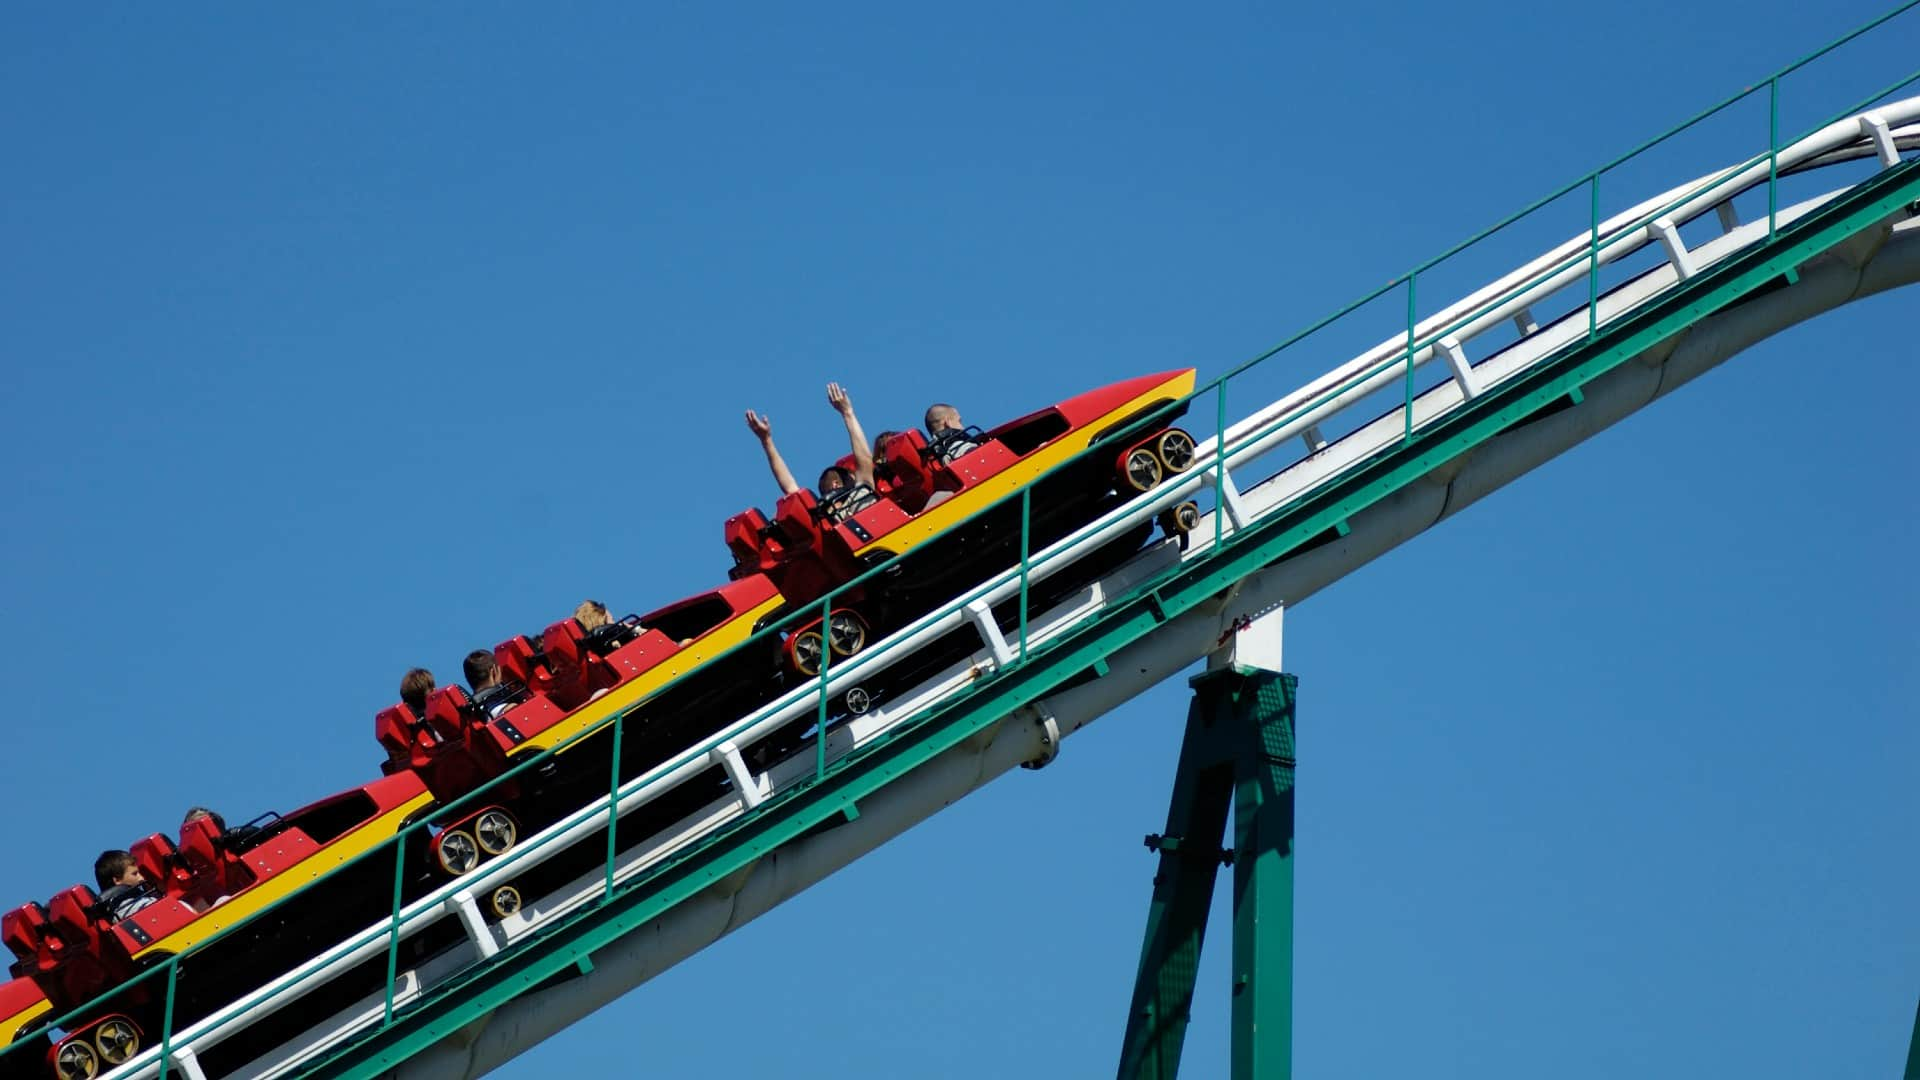 rising asx share price represented by rollercoaster ride climbing higher